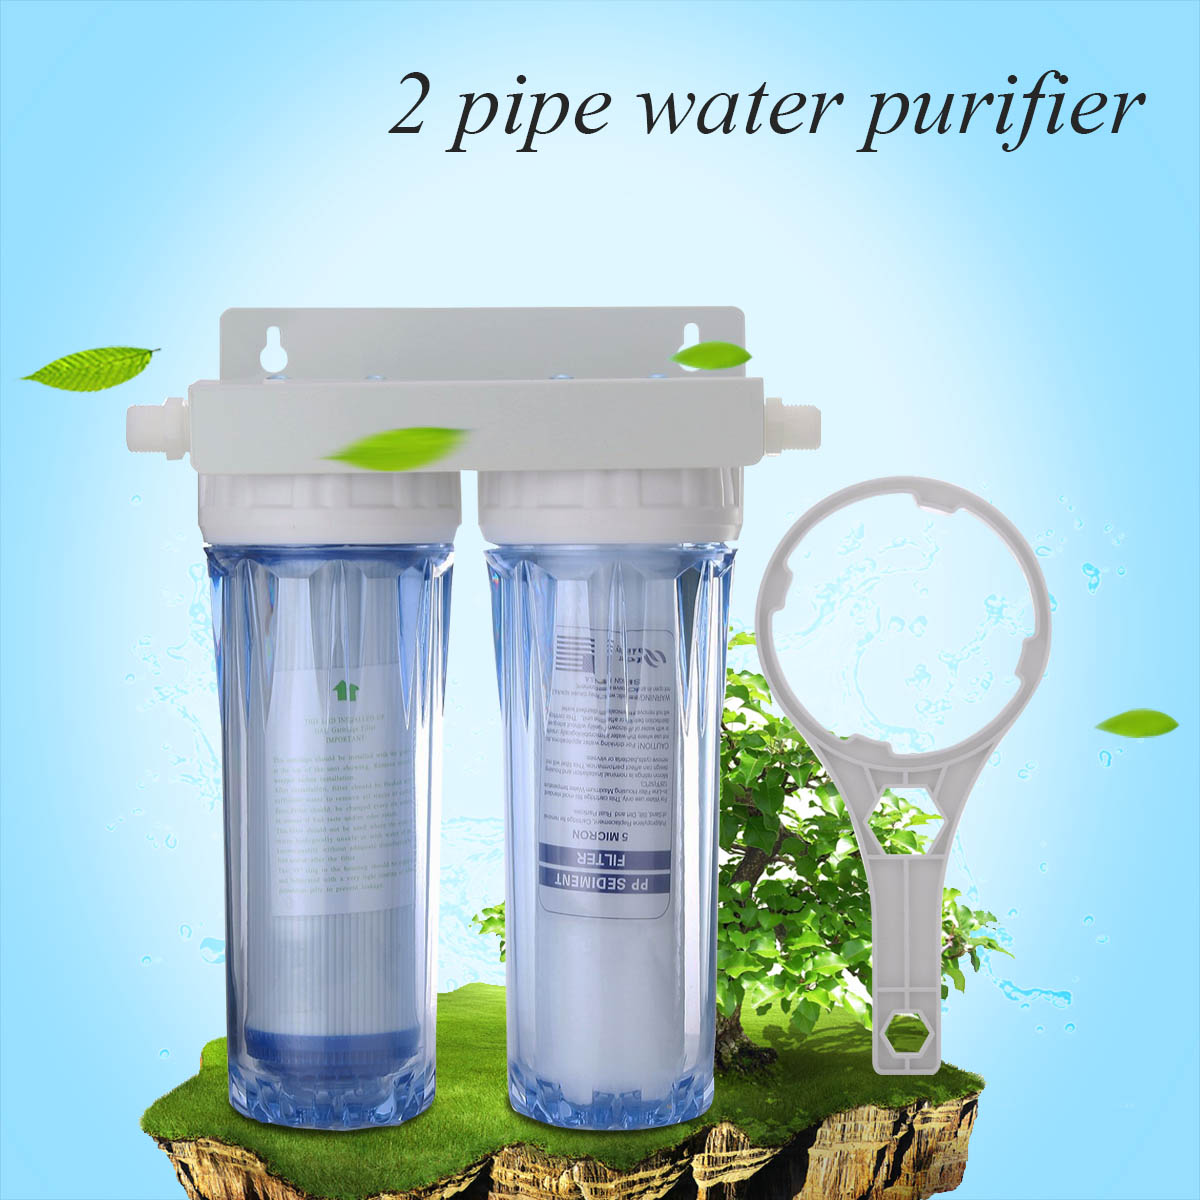 Home Water Purifier 10 Inch Dual 4 Port Water Filter Double Transparent PP Cotton + Activated Carbon Filter Wall Mounting Type